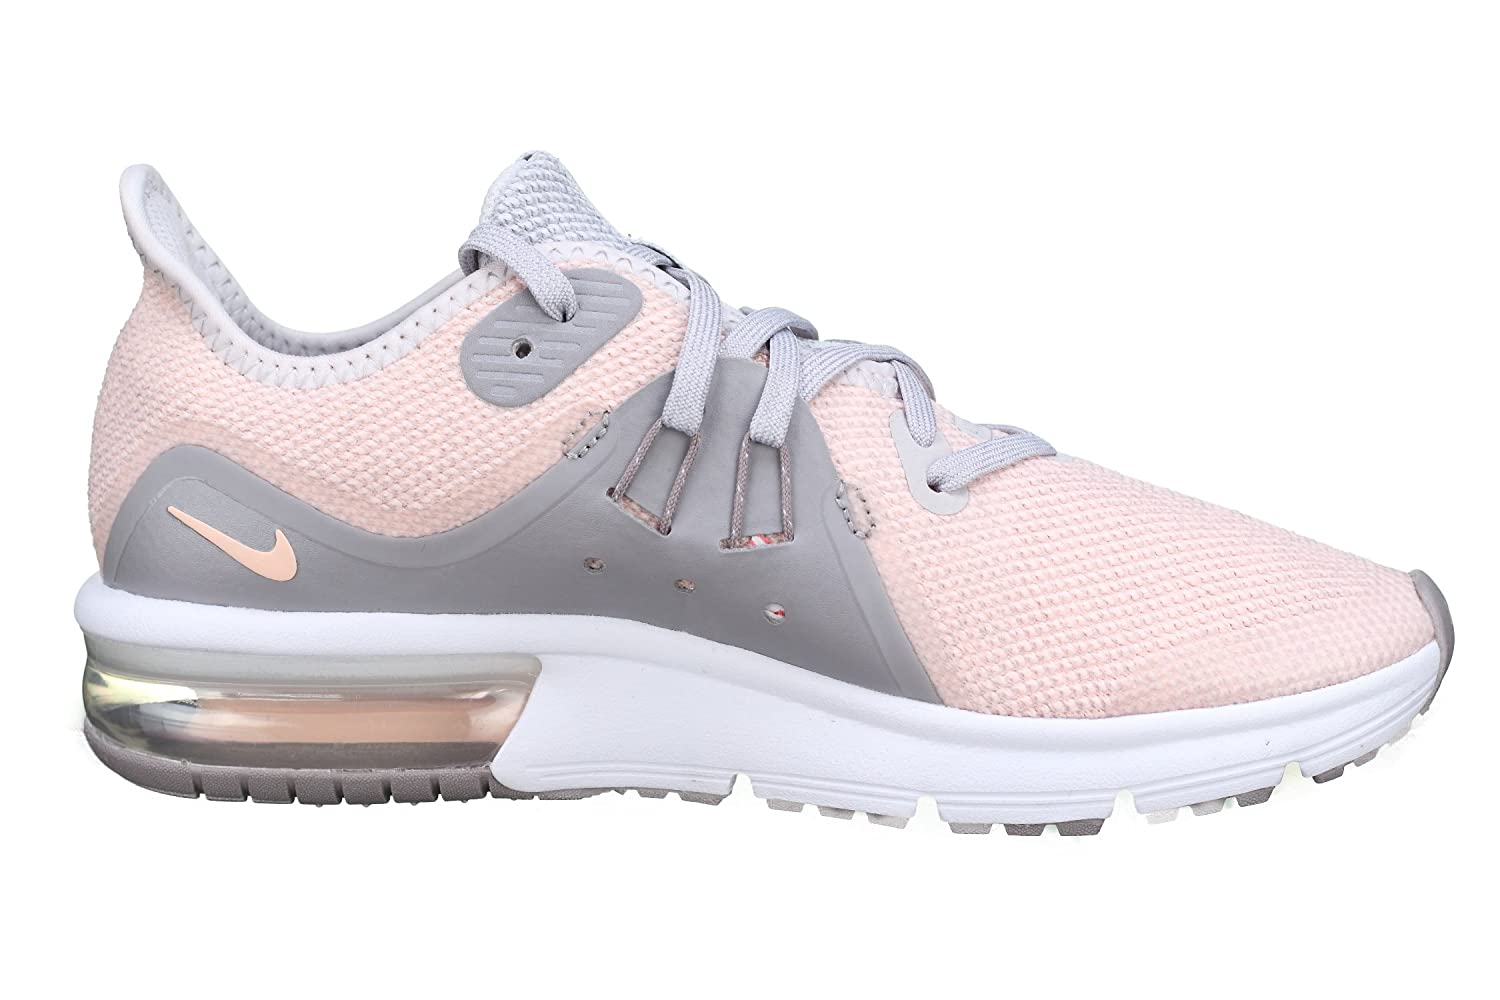 official photos 88ae2 69e49 Nike Basket Fille Air Max Sequent 3 GS 922885-004 RoseGris